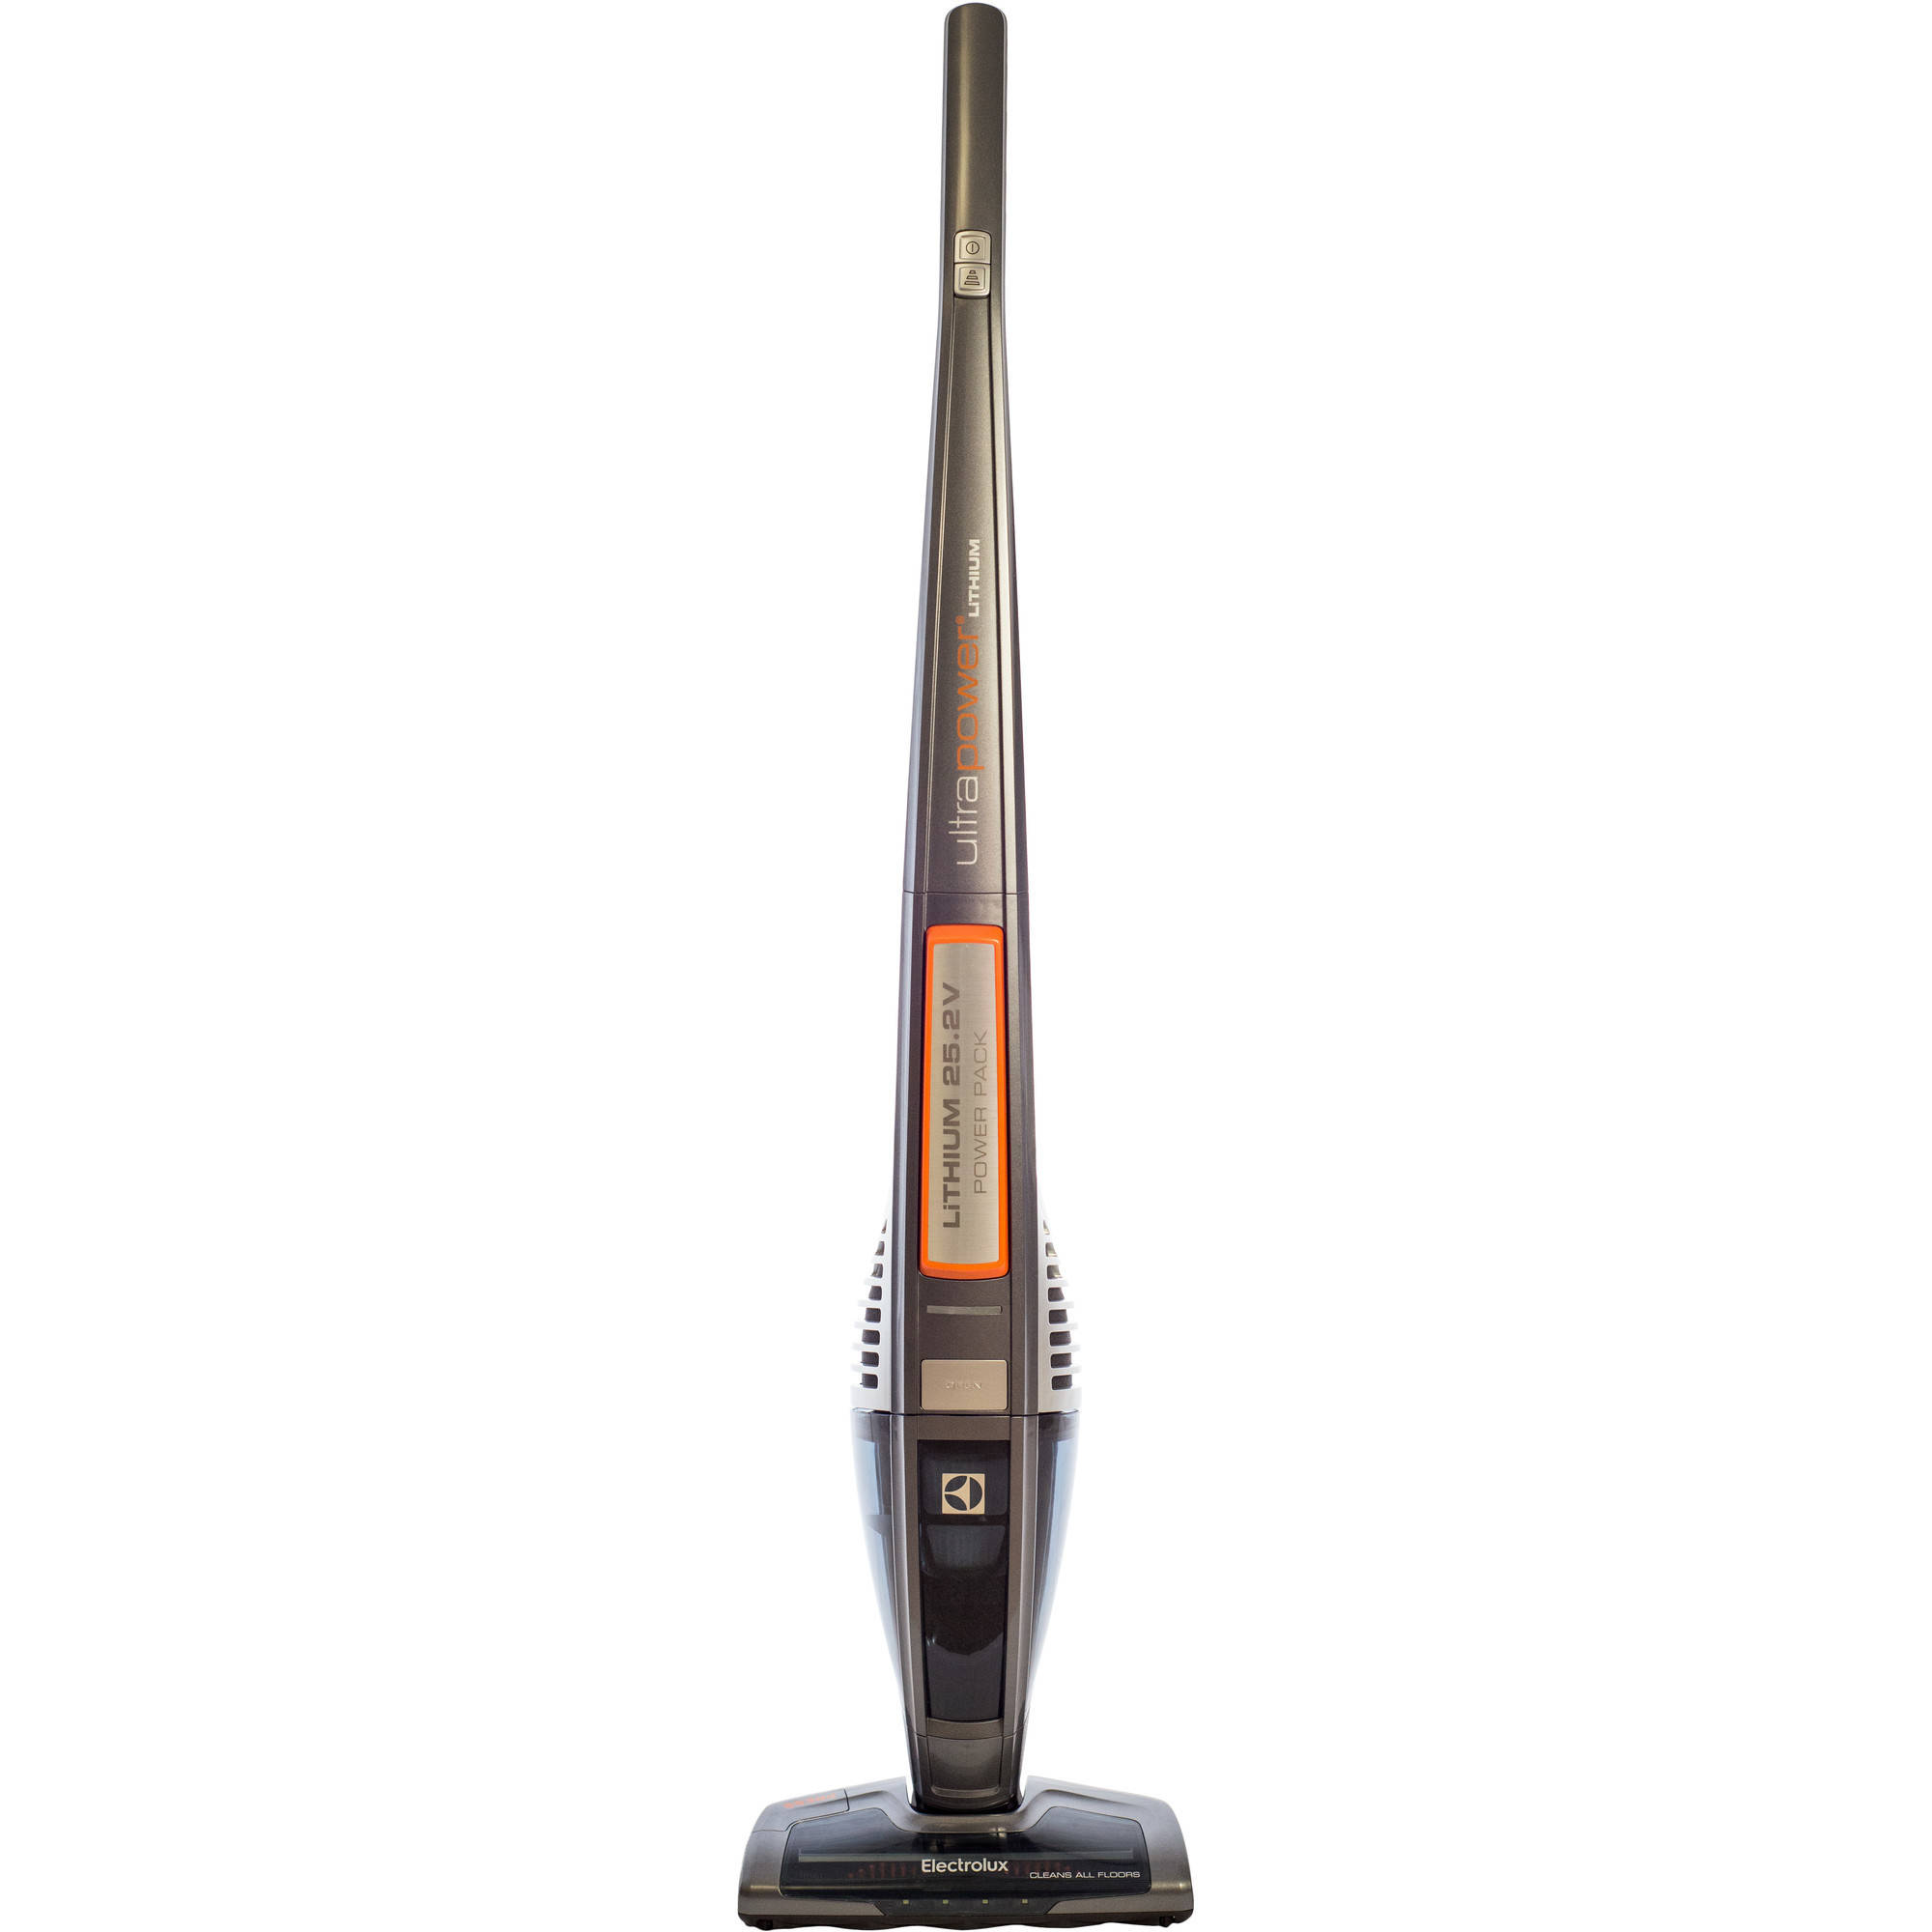 electrolux 2 in 1 cordless. electrolux ultrapower lithium ion cordless 2-in-1 stick vacuum, el3020a 2 in 1 e